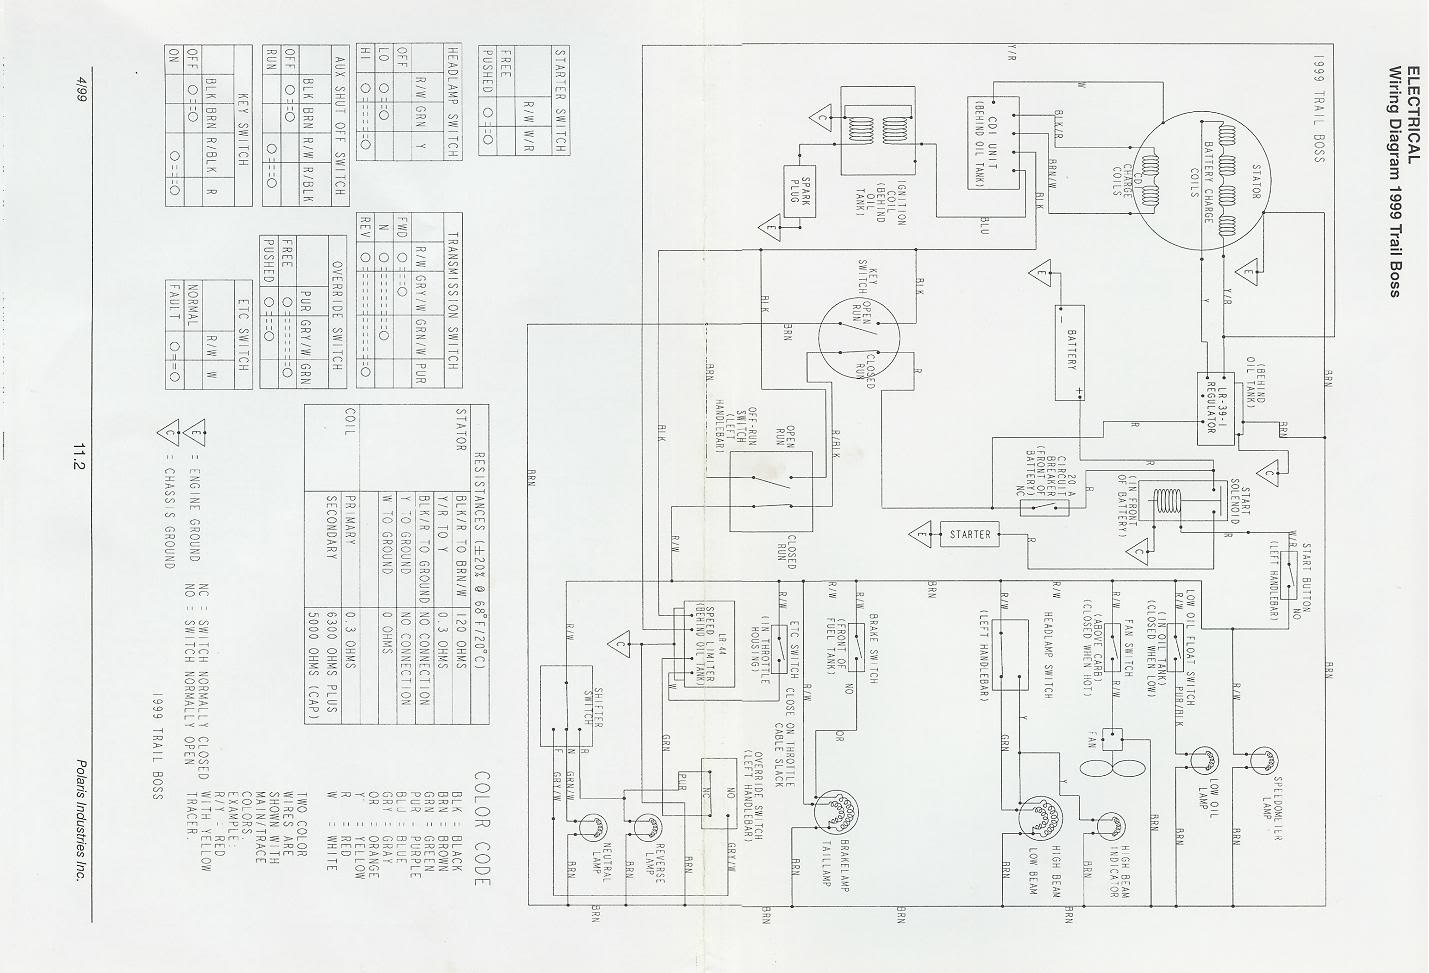 POLARIS 350L TRAIL BOSS    WIRING       DIAGRAM     Auto Electrical